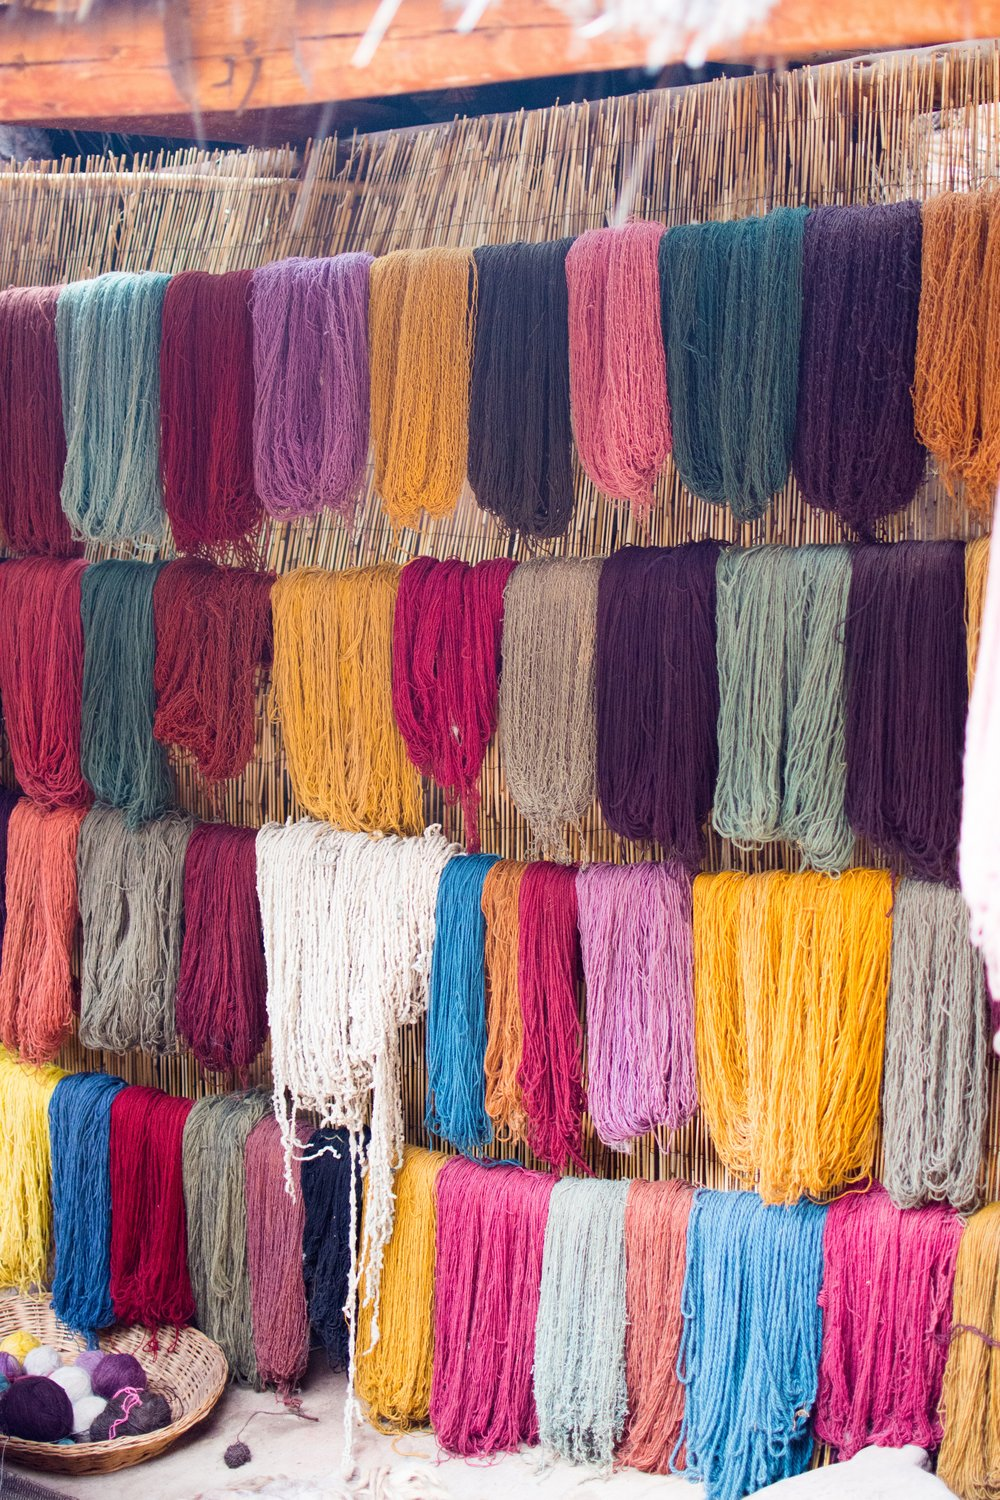 Naturally dyed Baby Alpaca wool